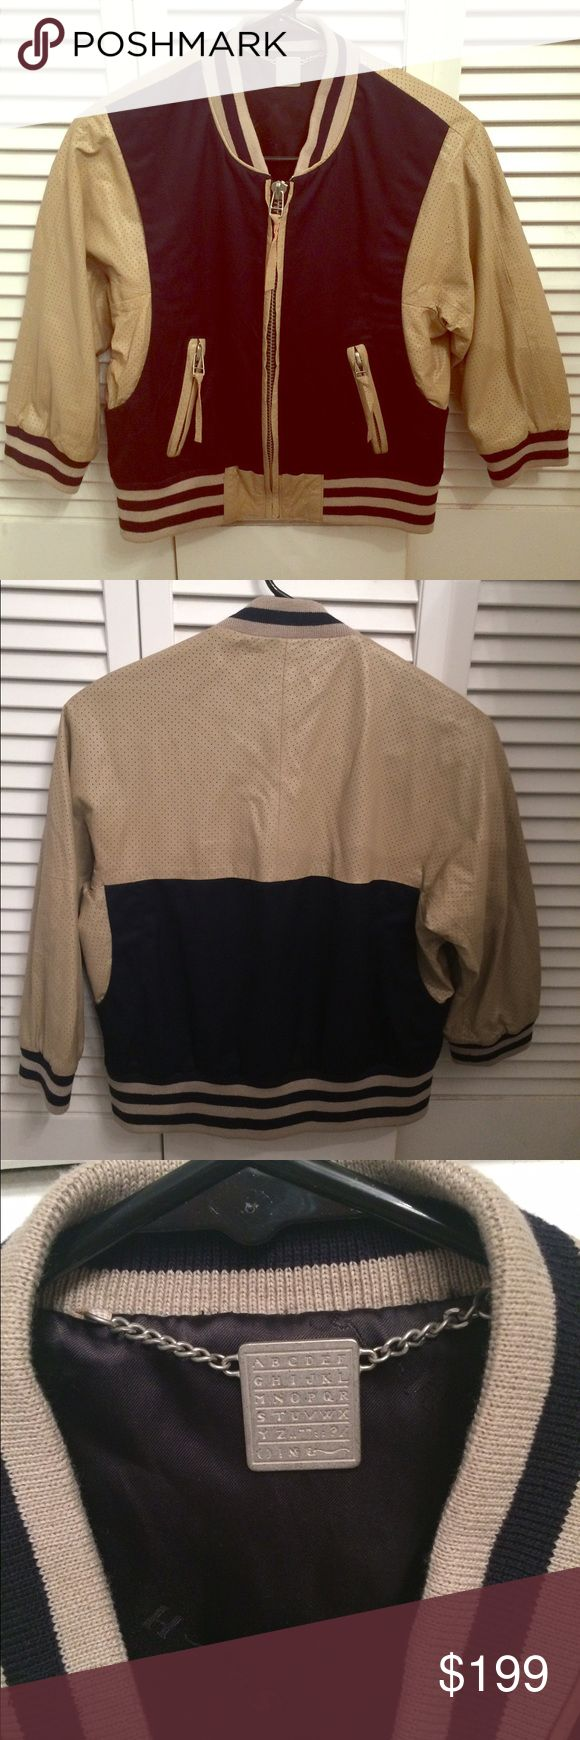 Shipley & Halmos perforated leather tan jacket Excellent condition.  Very cute 3/4 sleeves tan leather jacket And dark blue fabric combination.  Inside lining is in great condition as well.  Very cute and trendy!  Final sale Shipley & Halmos Jackets & Coats Jean Jackets